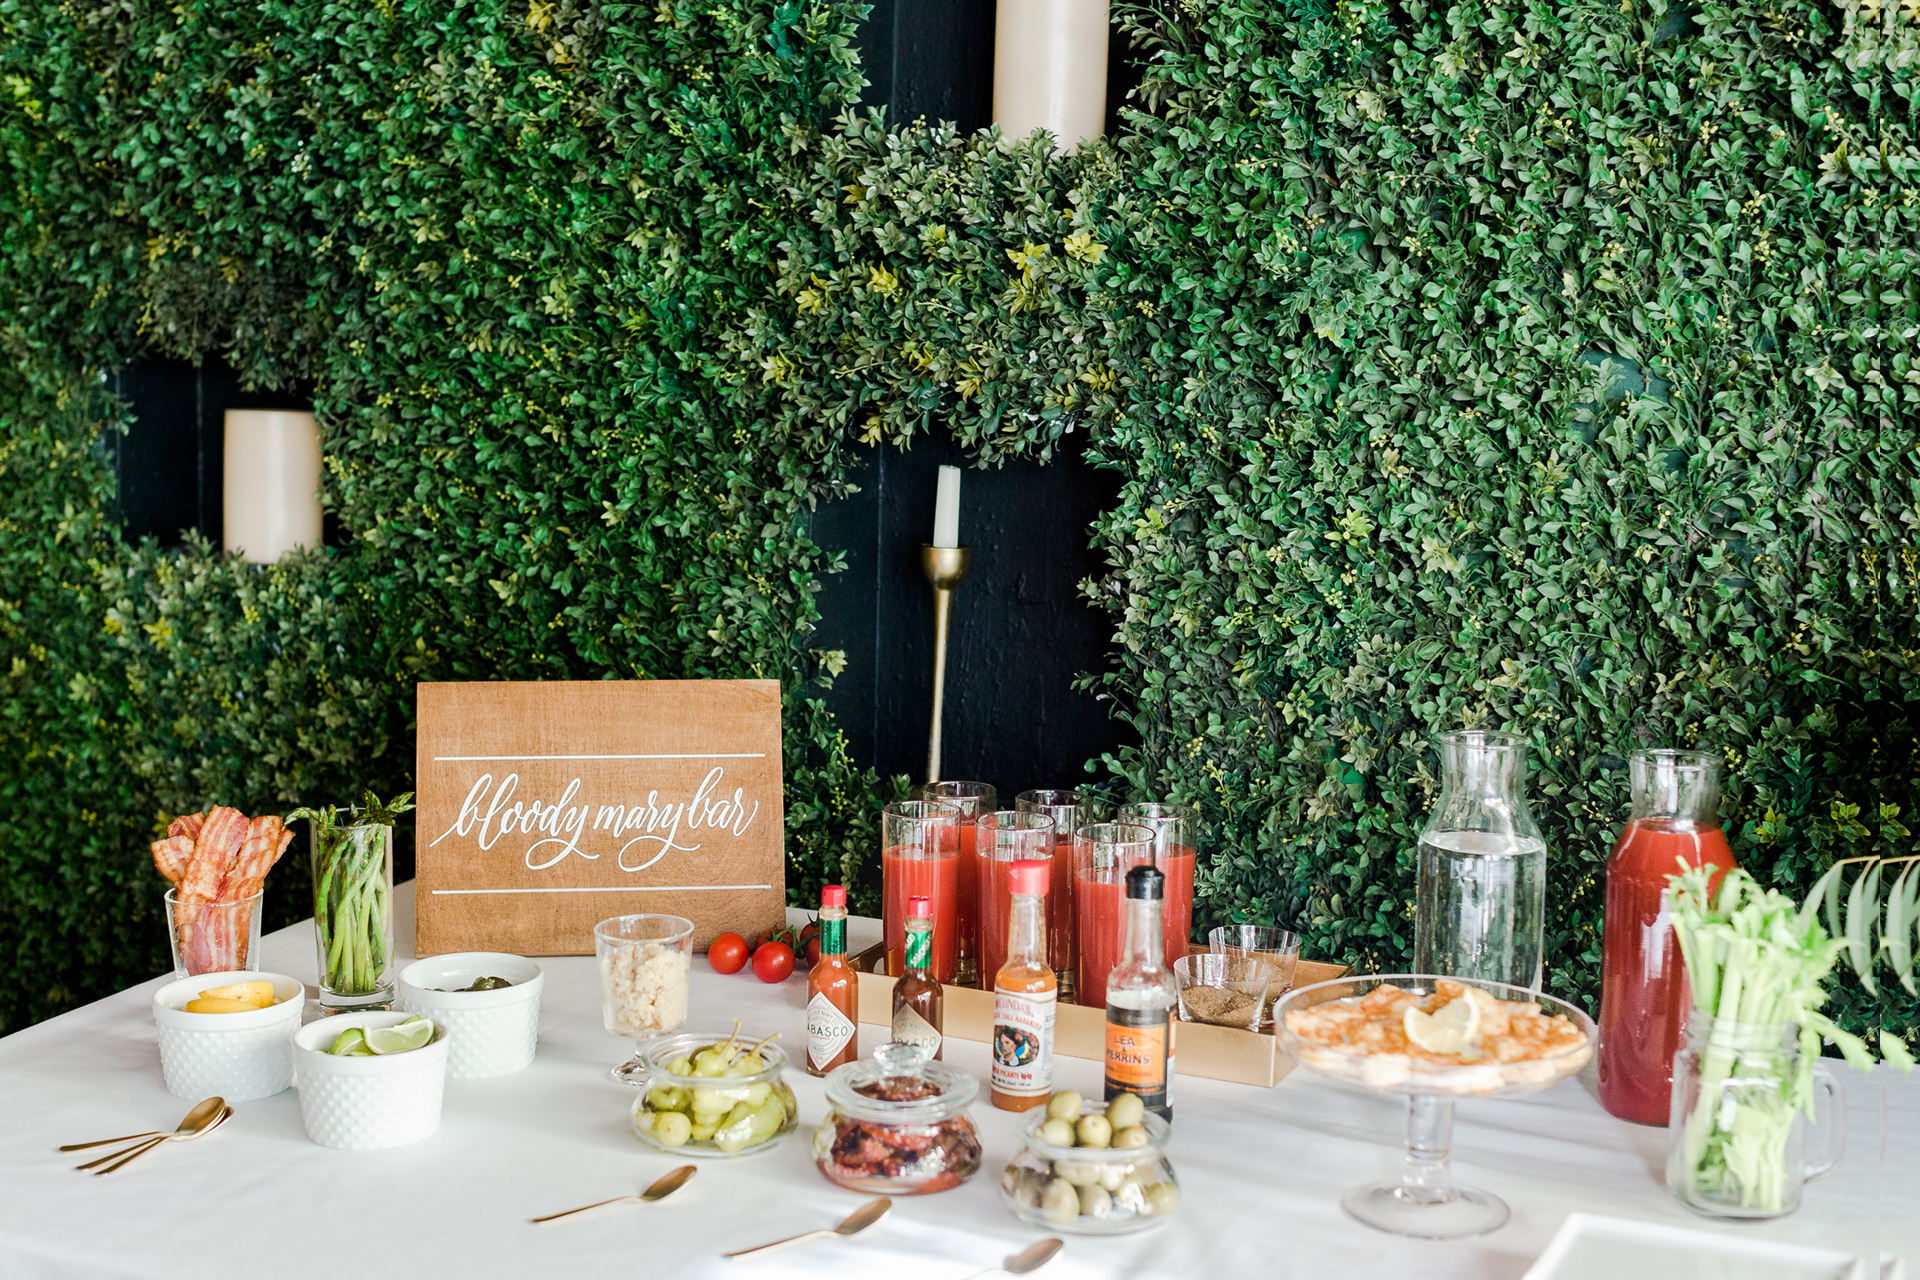 A bloody Mary bar from an event hosted by Ristorante Beatrice.